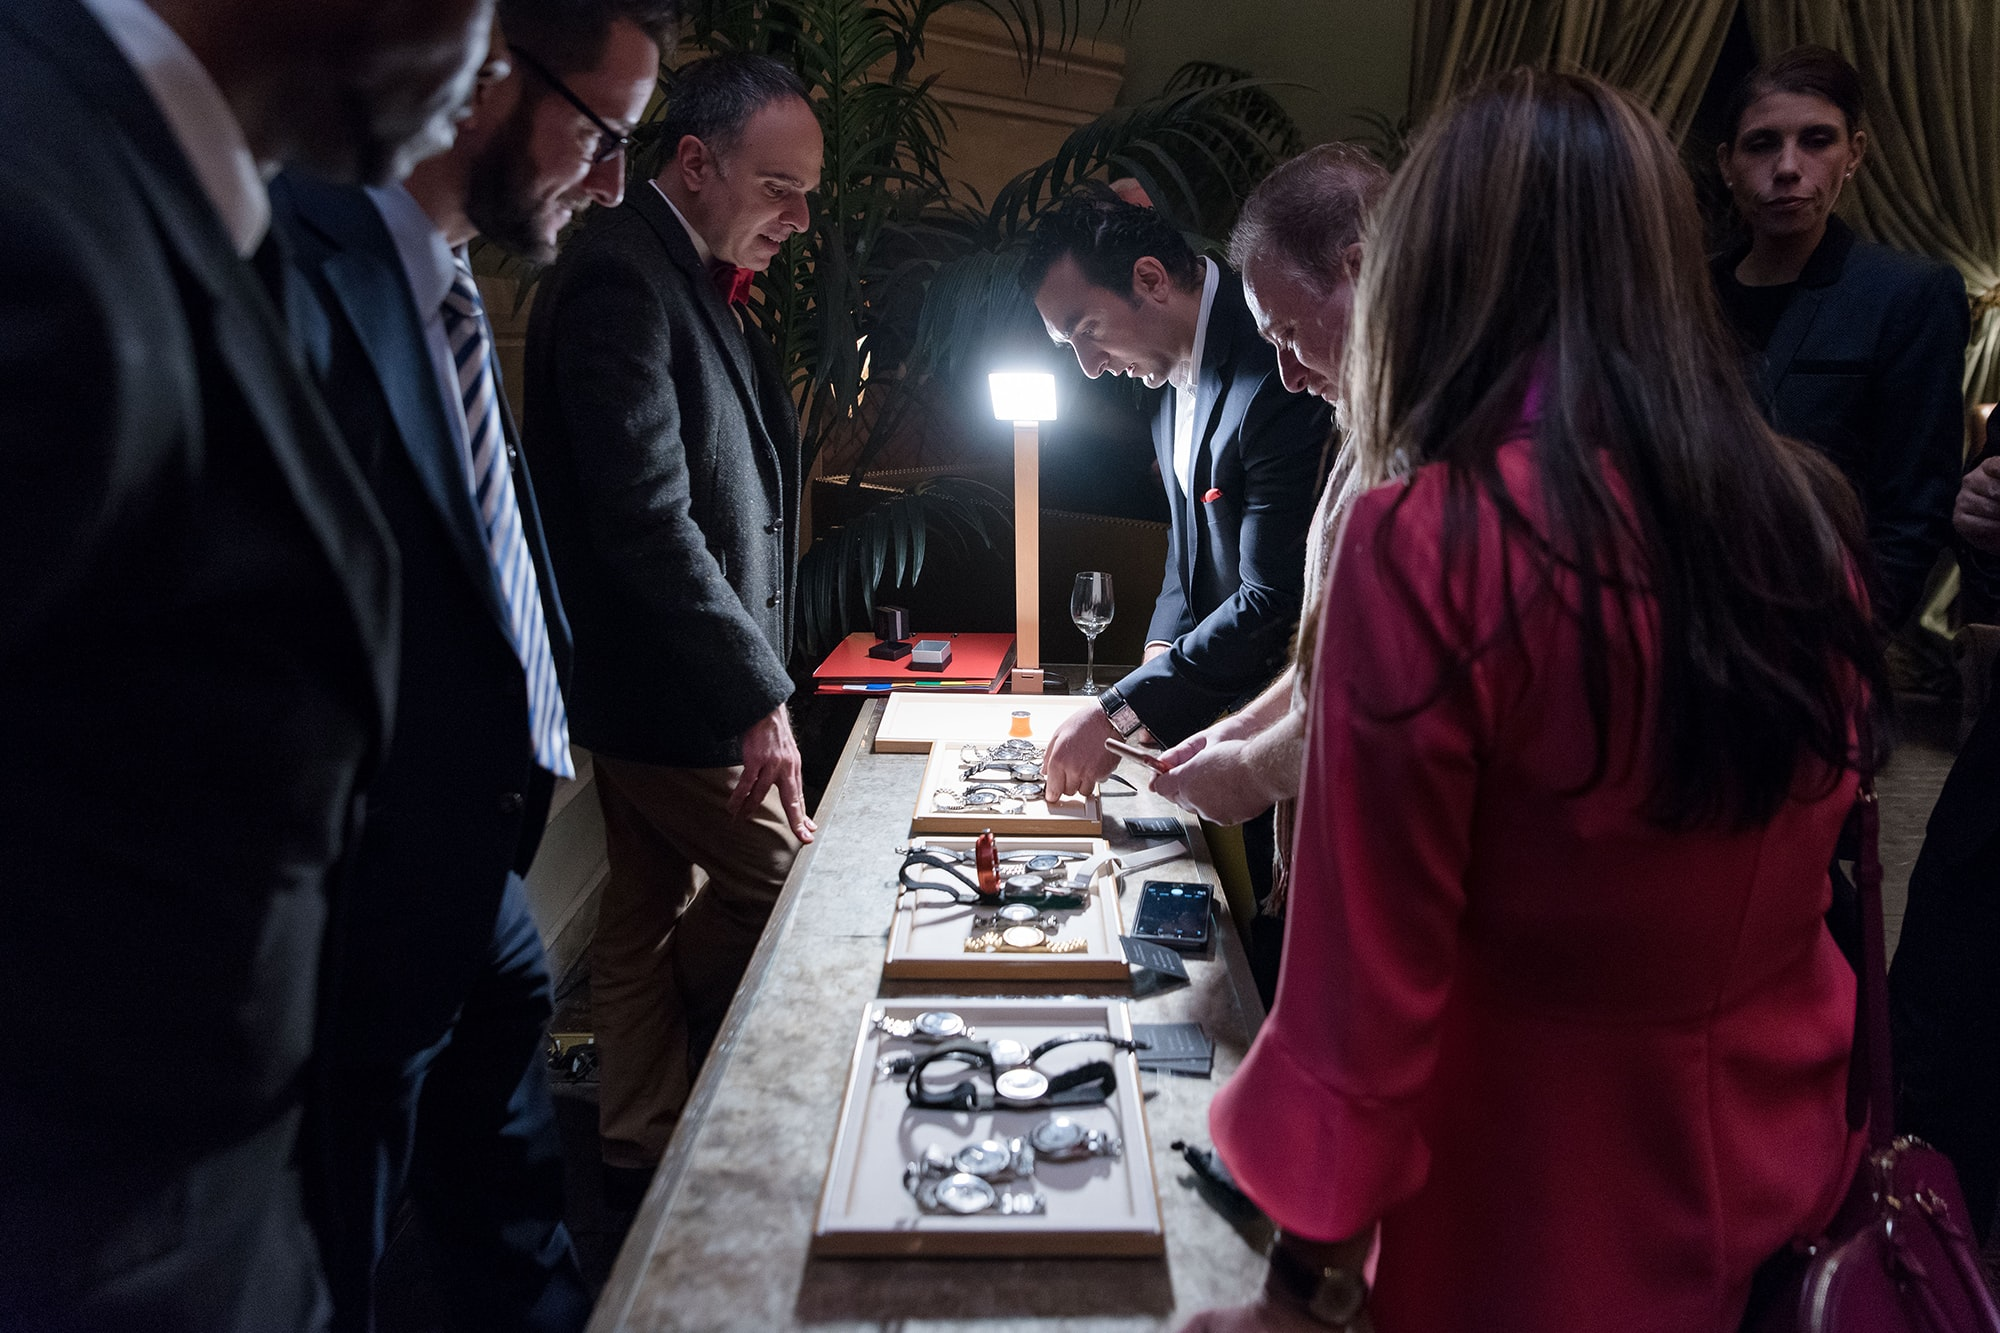 Photo Report: HODINKEE And Omega Celebrate The 60th Anniversary Of The Speedmaster Photo Report: HODINKEE And Omega Celebrate The 60th Anniversary Of The Speedmaster  20170221 OmegaSpeedmaster60th 153